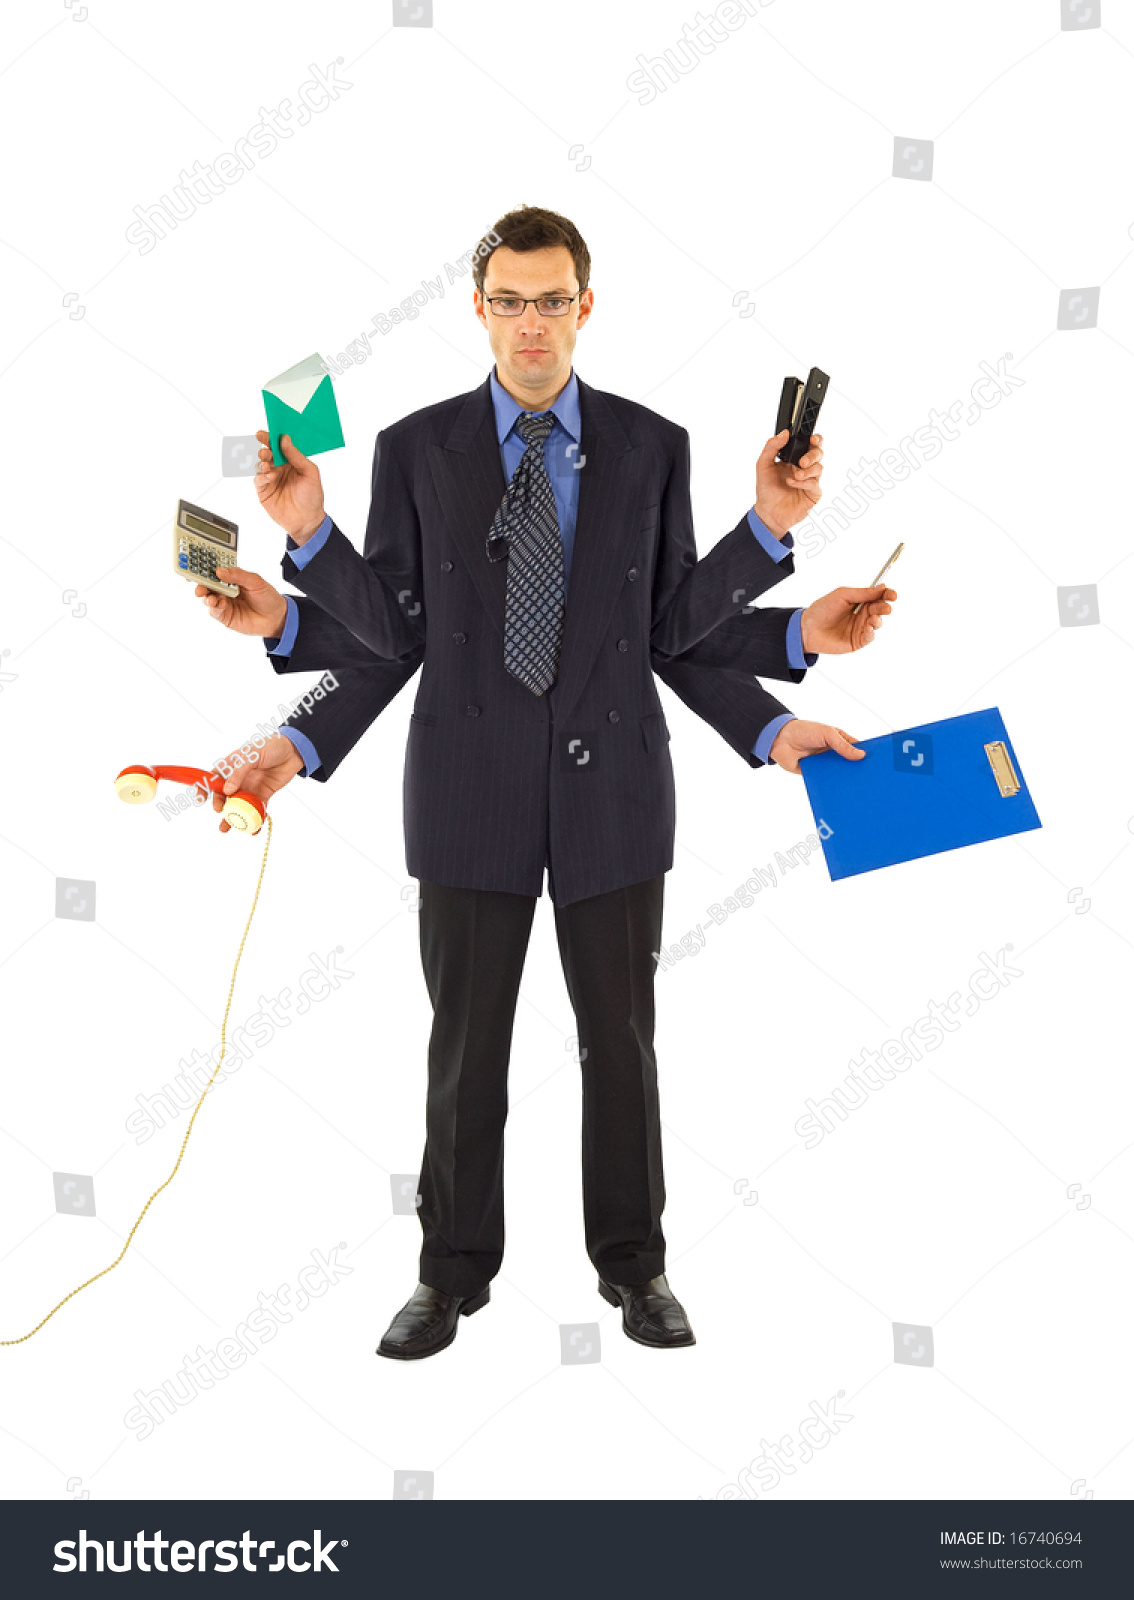 businessman office employee doing much work stock photo  businessman or office employee doing too much work isolated